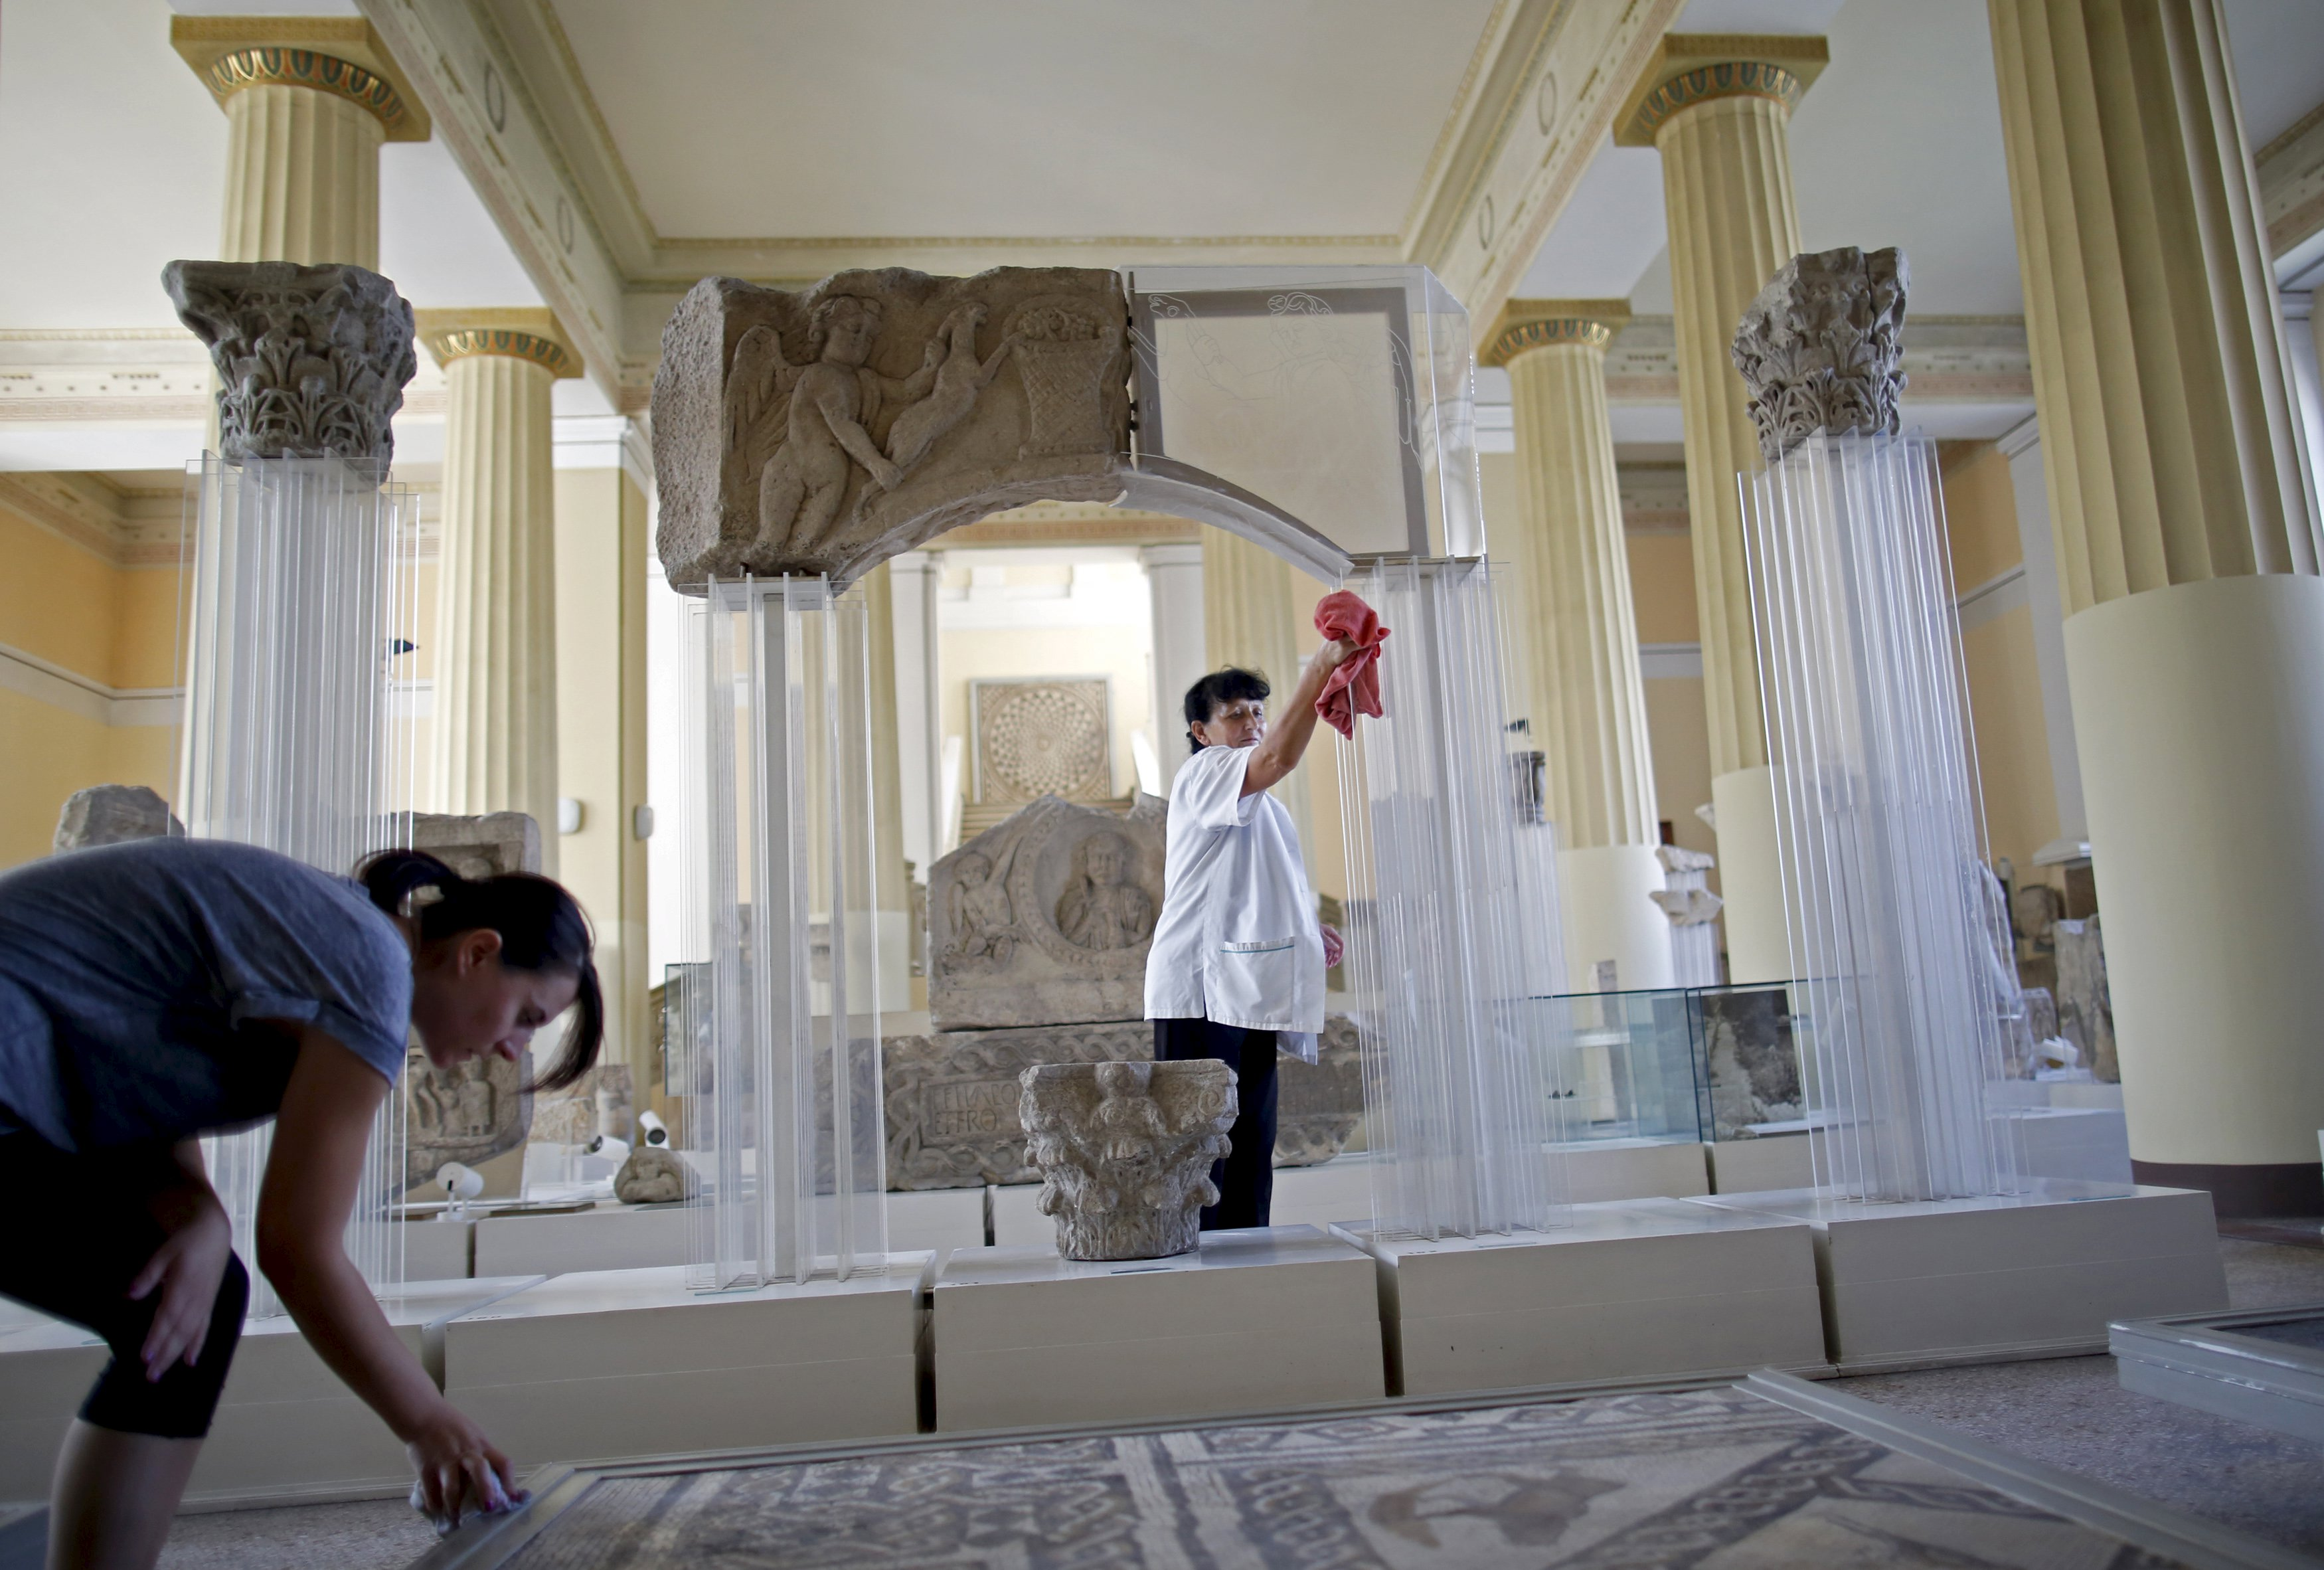 National Museum employees Ana Maric (L) and Djula Keric clean archaeological excavations in National Museum in Sarajevo, September 9, 2015. Employees at Bosnia's National Museum, known as the British Museum of the Balkans, returned to work on Wednesday to prepare for the re-opening of the institution which was closed three years ago over a lack of funding. The divided country's authorities have promised to provide funding for the Sarajevo landmark museum and open it on Sept. 15, following years of failed attempts to agree on how to finance it. REUTERS/Dado Ruvic